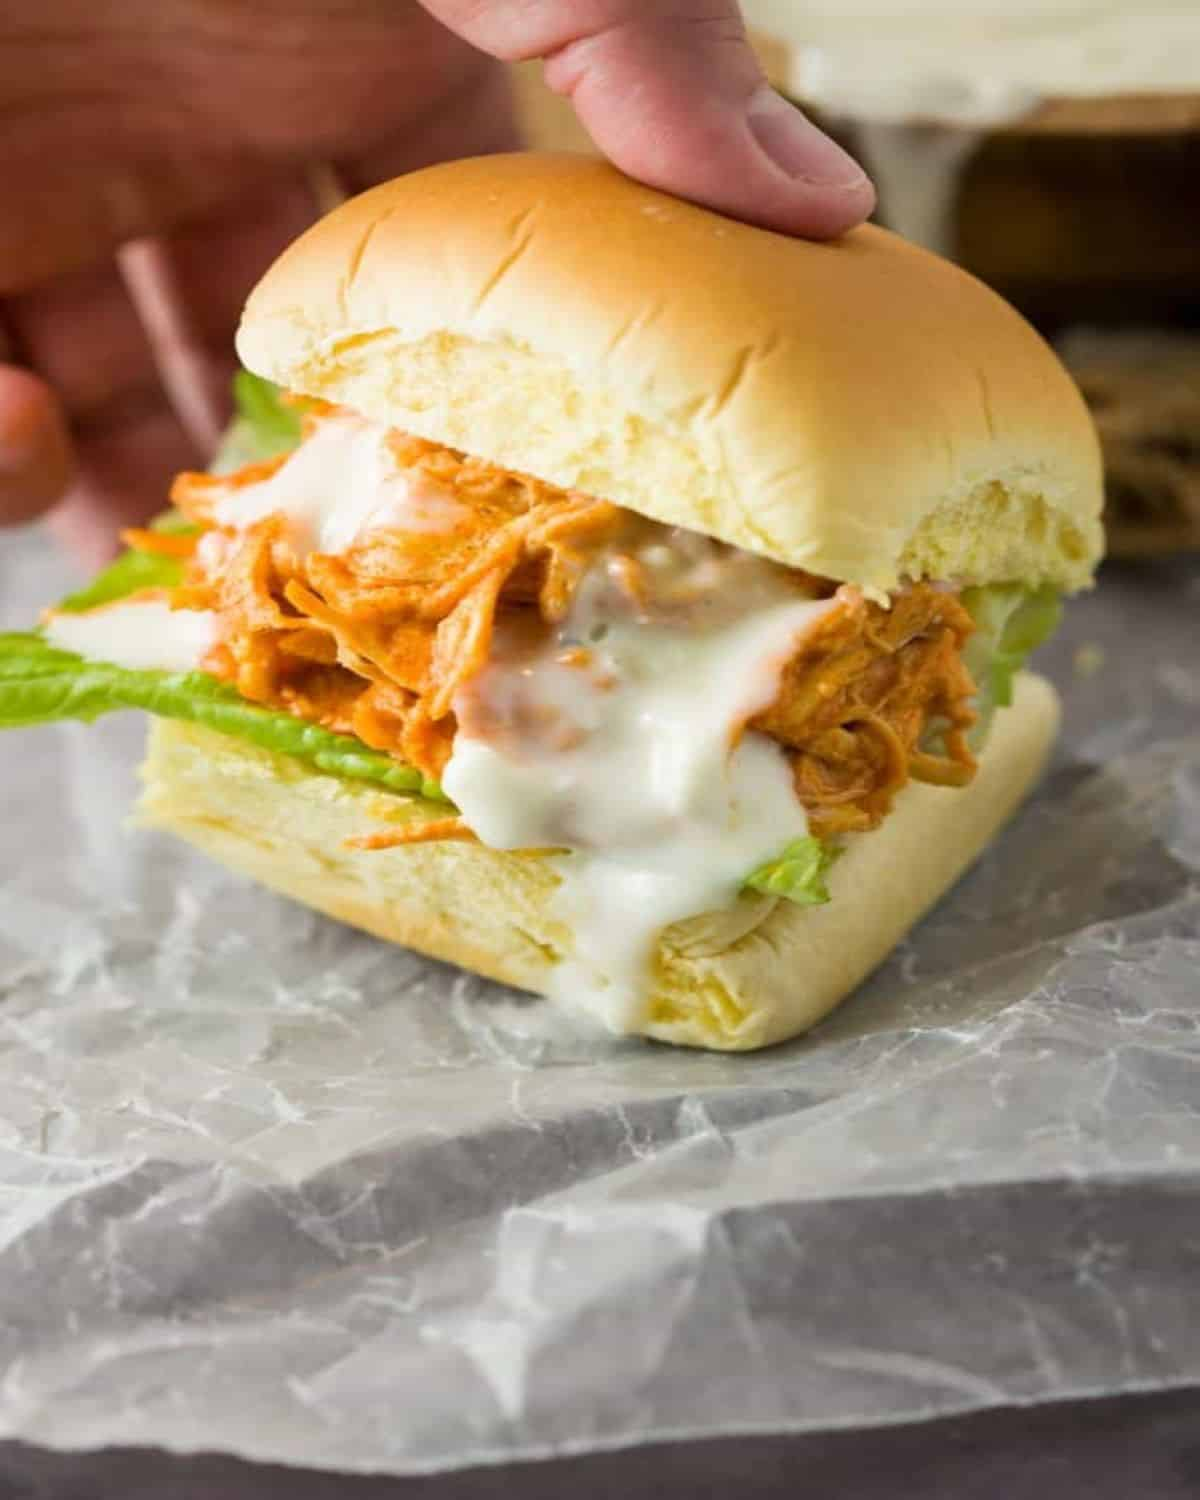 chicken honey mini party slider on wax paper with melted cheese.